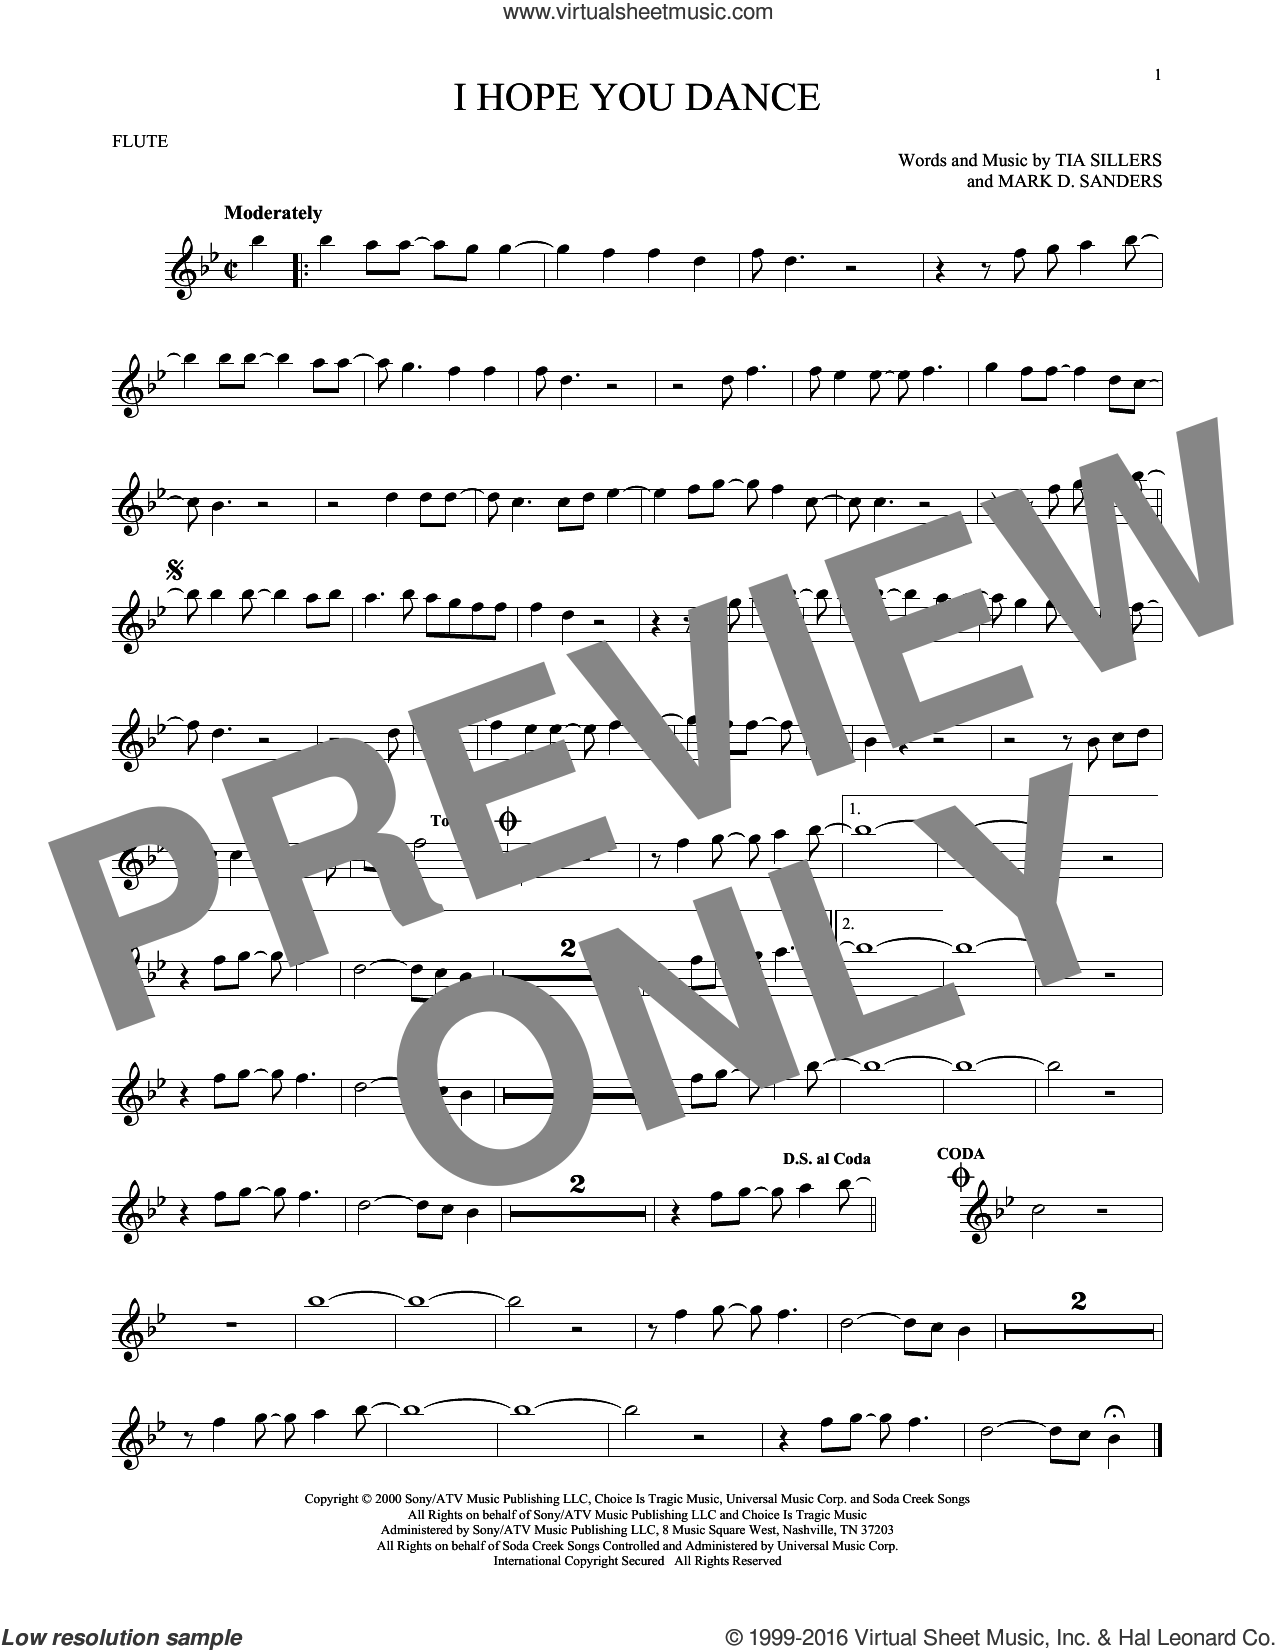 I Hope You Dance sheet music for flute solo by Lee Ann Womack with Sons of the Desert and Mark D. Sanders, intermediate. Score Image Preview.